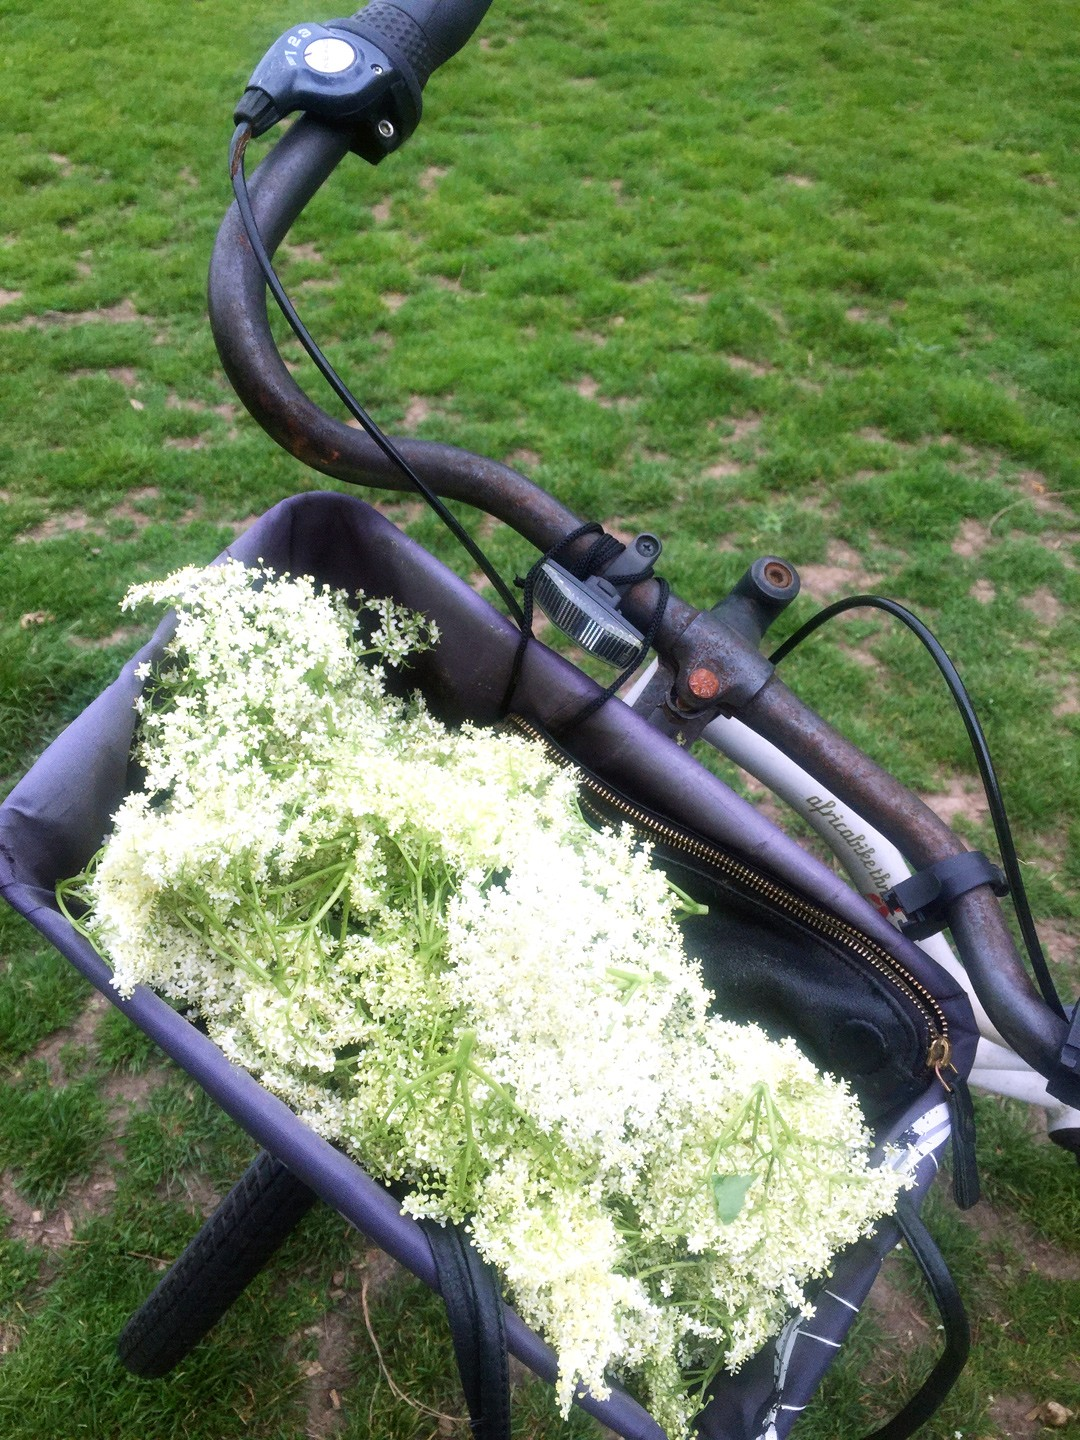 The elderflower tree took us by surprise without my tote bag, so the basket did the job just fine! Homeward bound to get started on making our own elderflower cordial! Make your own with these simple steps: https://www.chalkandmoss.com/how-to-make-elderflower-cordial-easy-refreshing-summer-in-a-bottle/